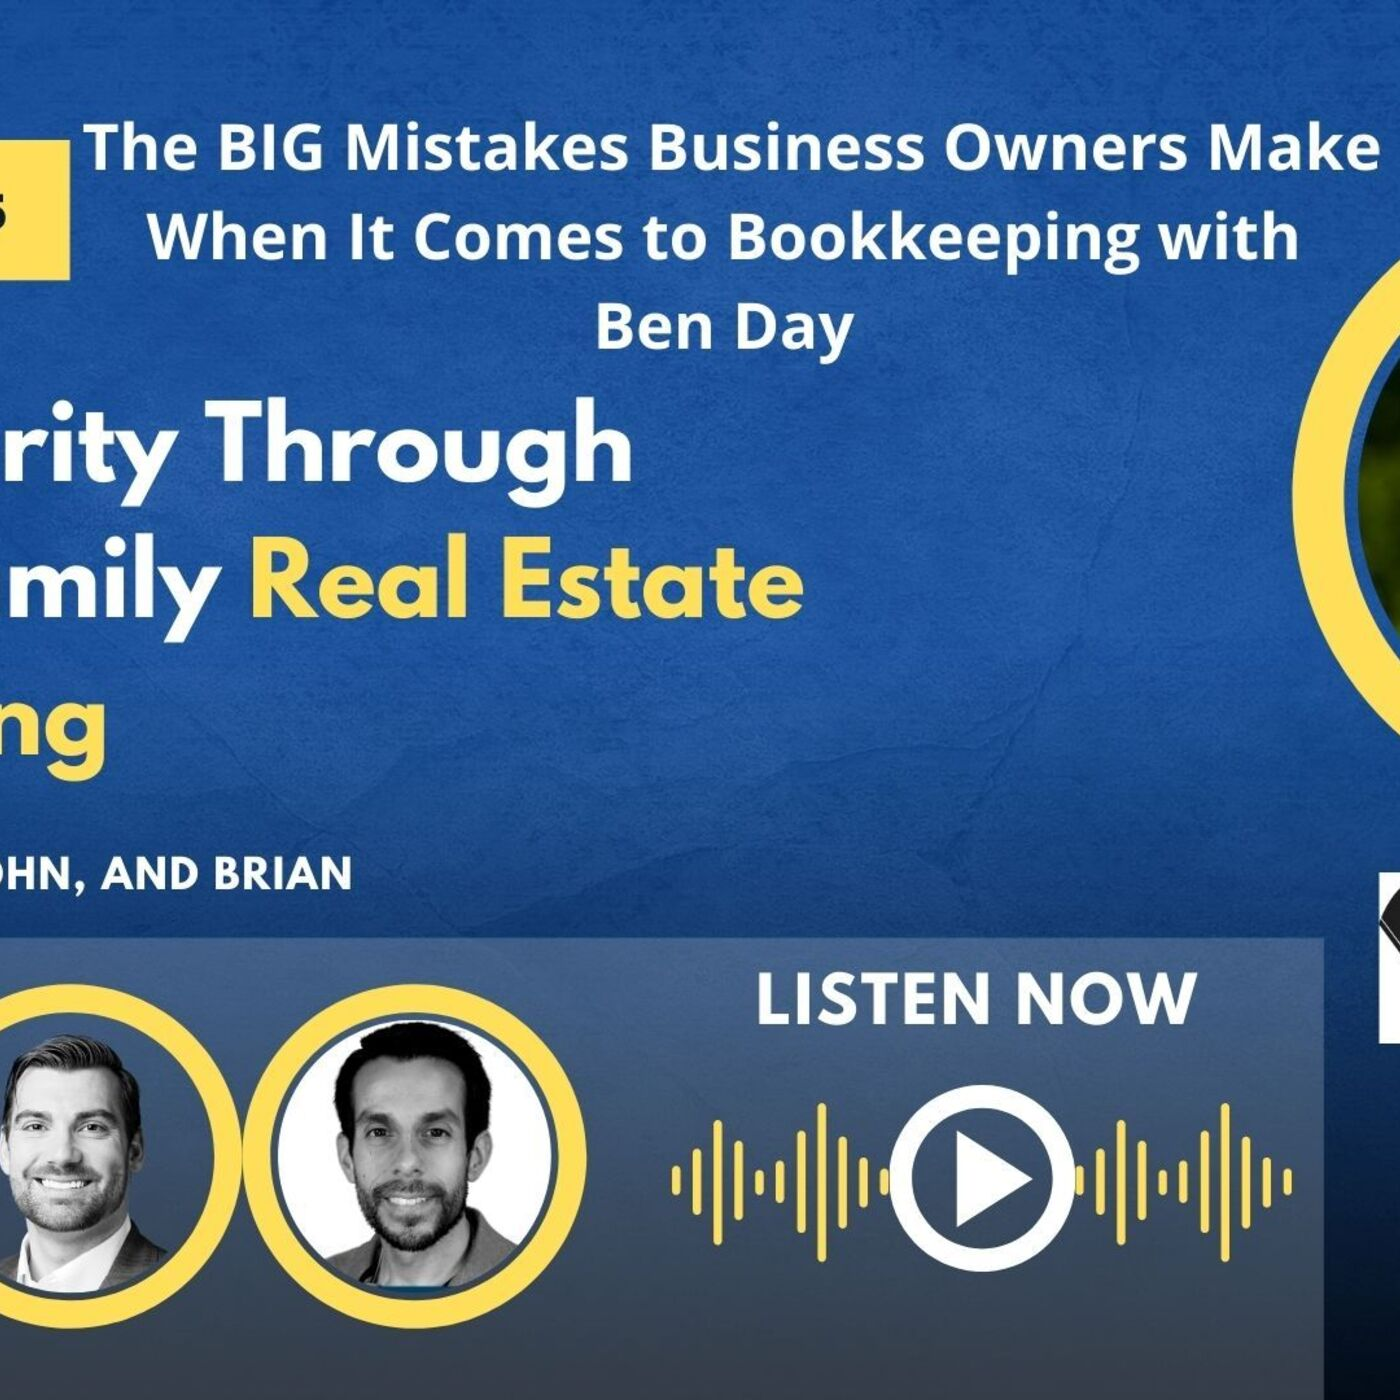 The BIG Mistakes Business Owners Make When It Comes to Bookkeeping with Ben Day